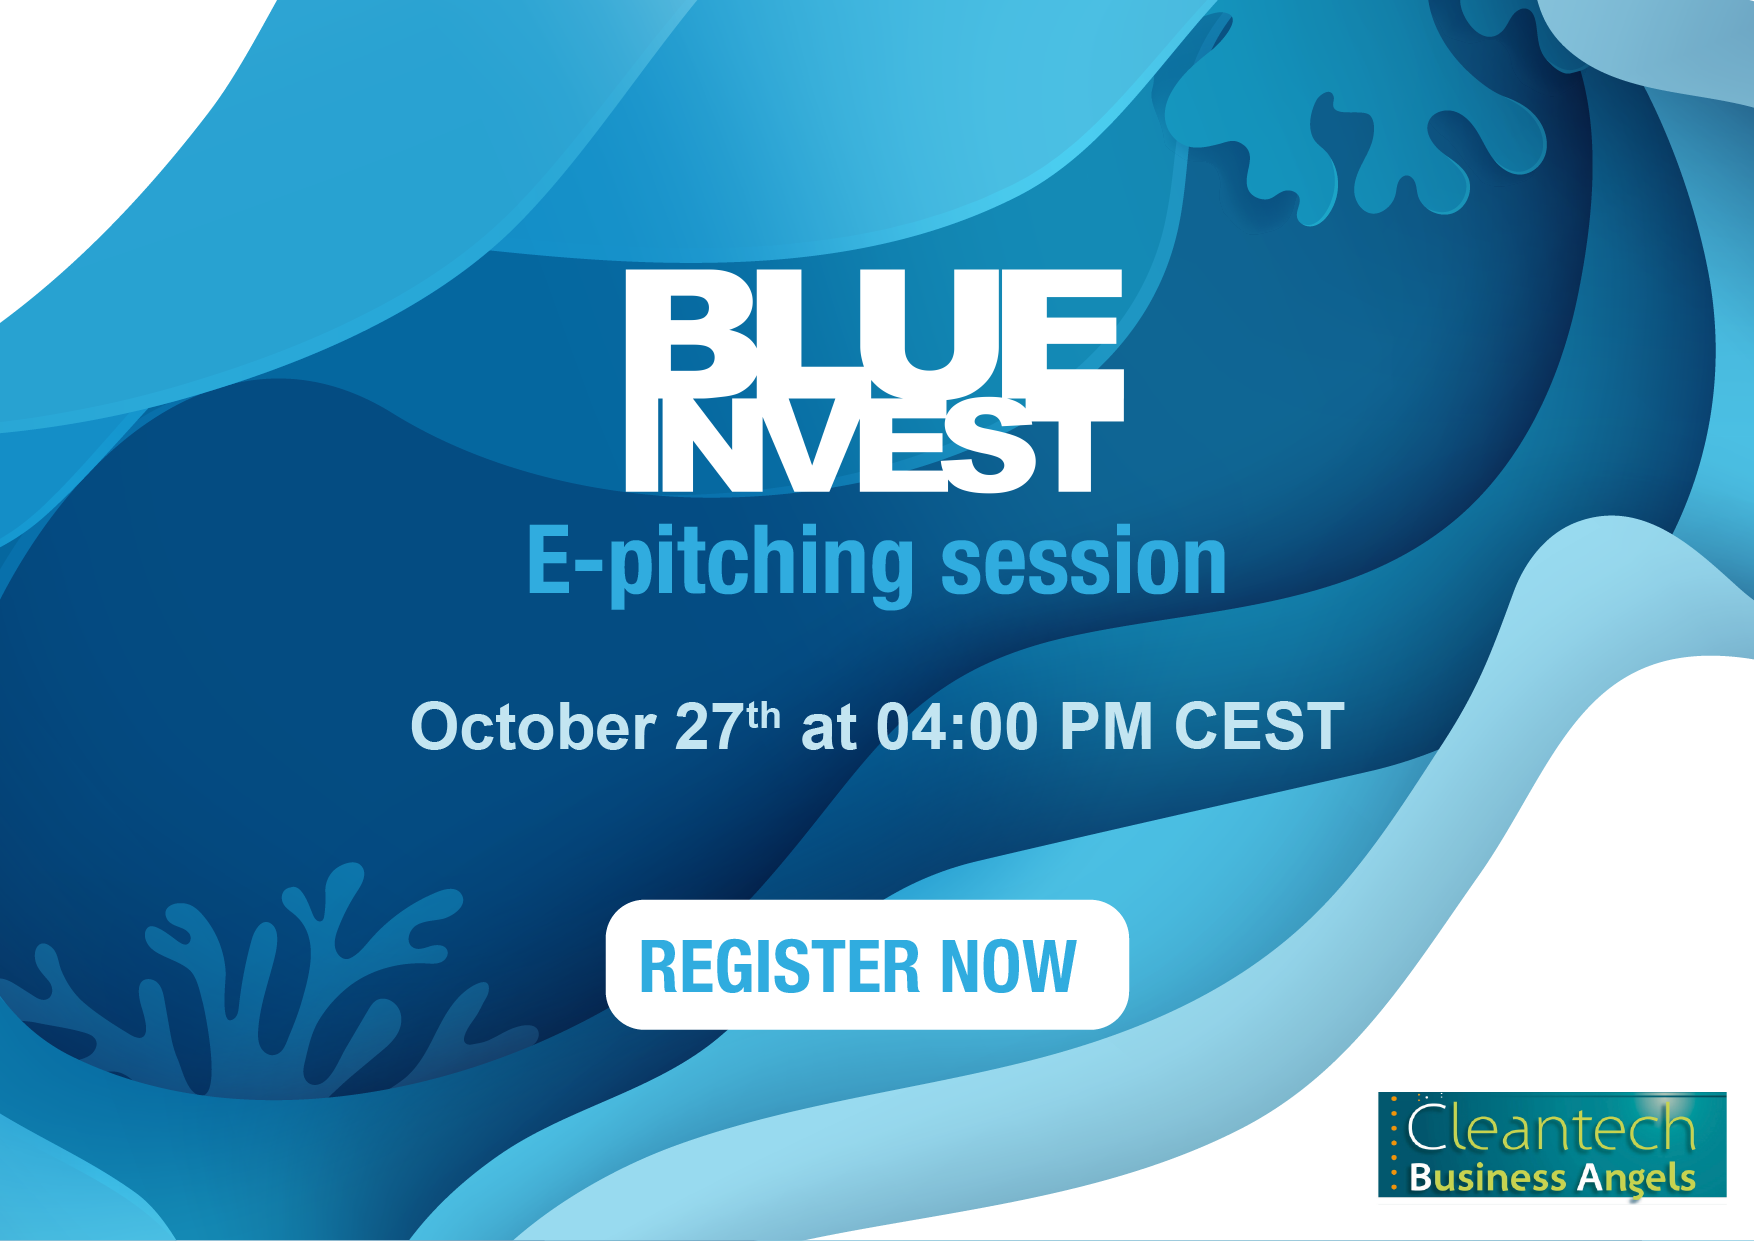 BlueInvest and Cleantech Business Angels join forces to introduce Blue Economy solutions on October 27th at 4:00 pm CEST